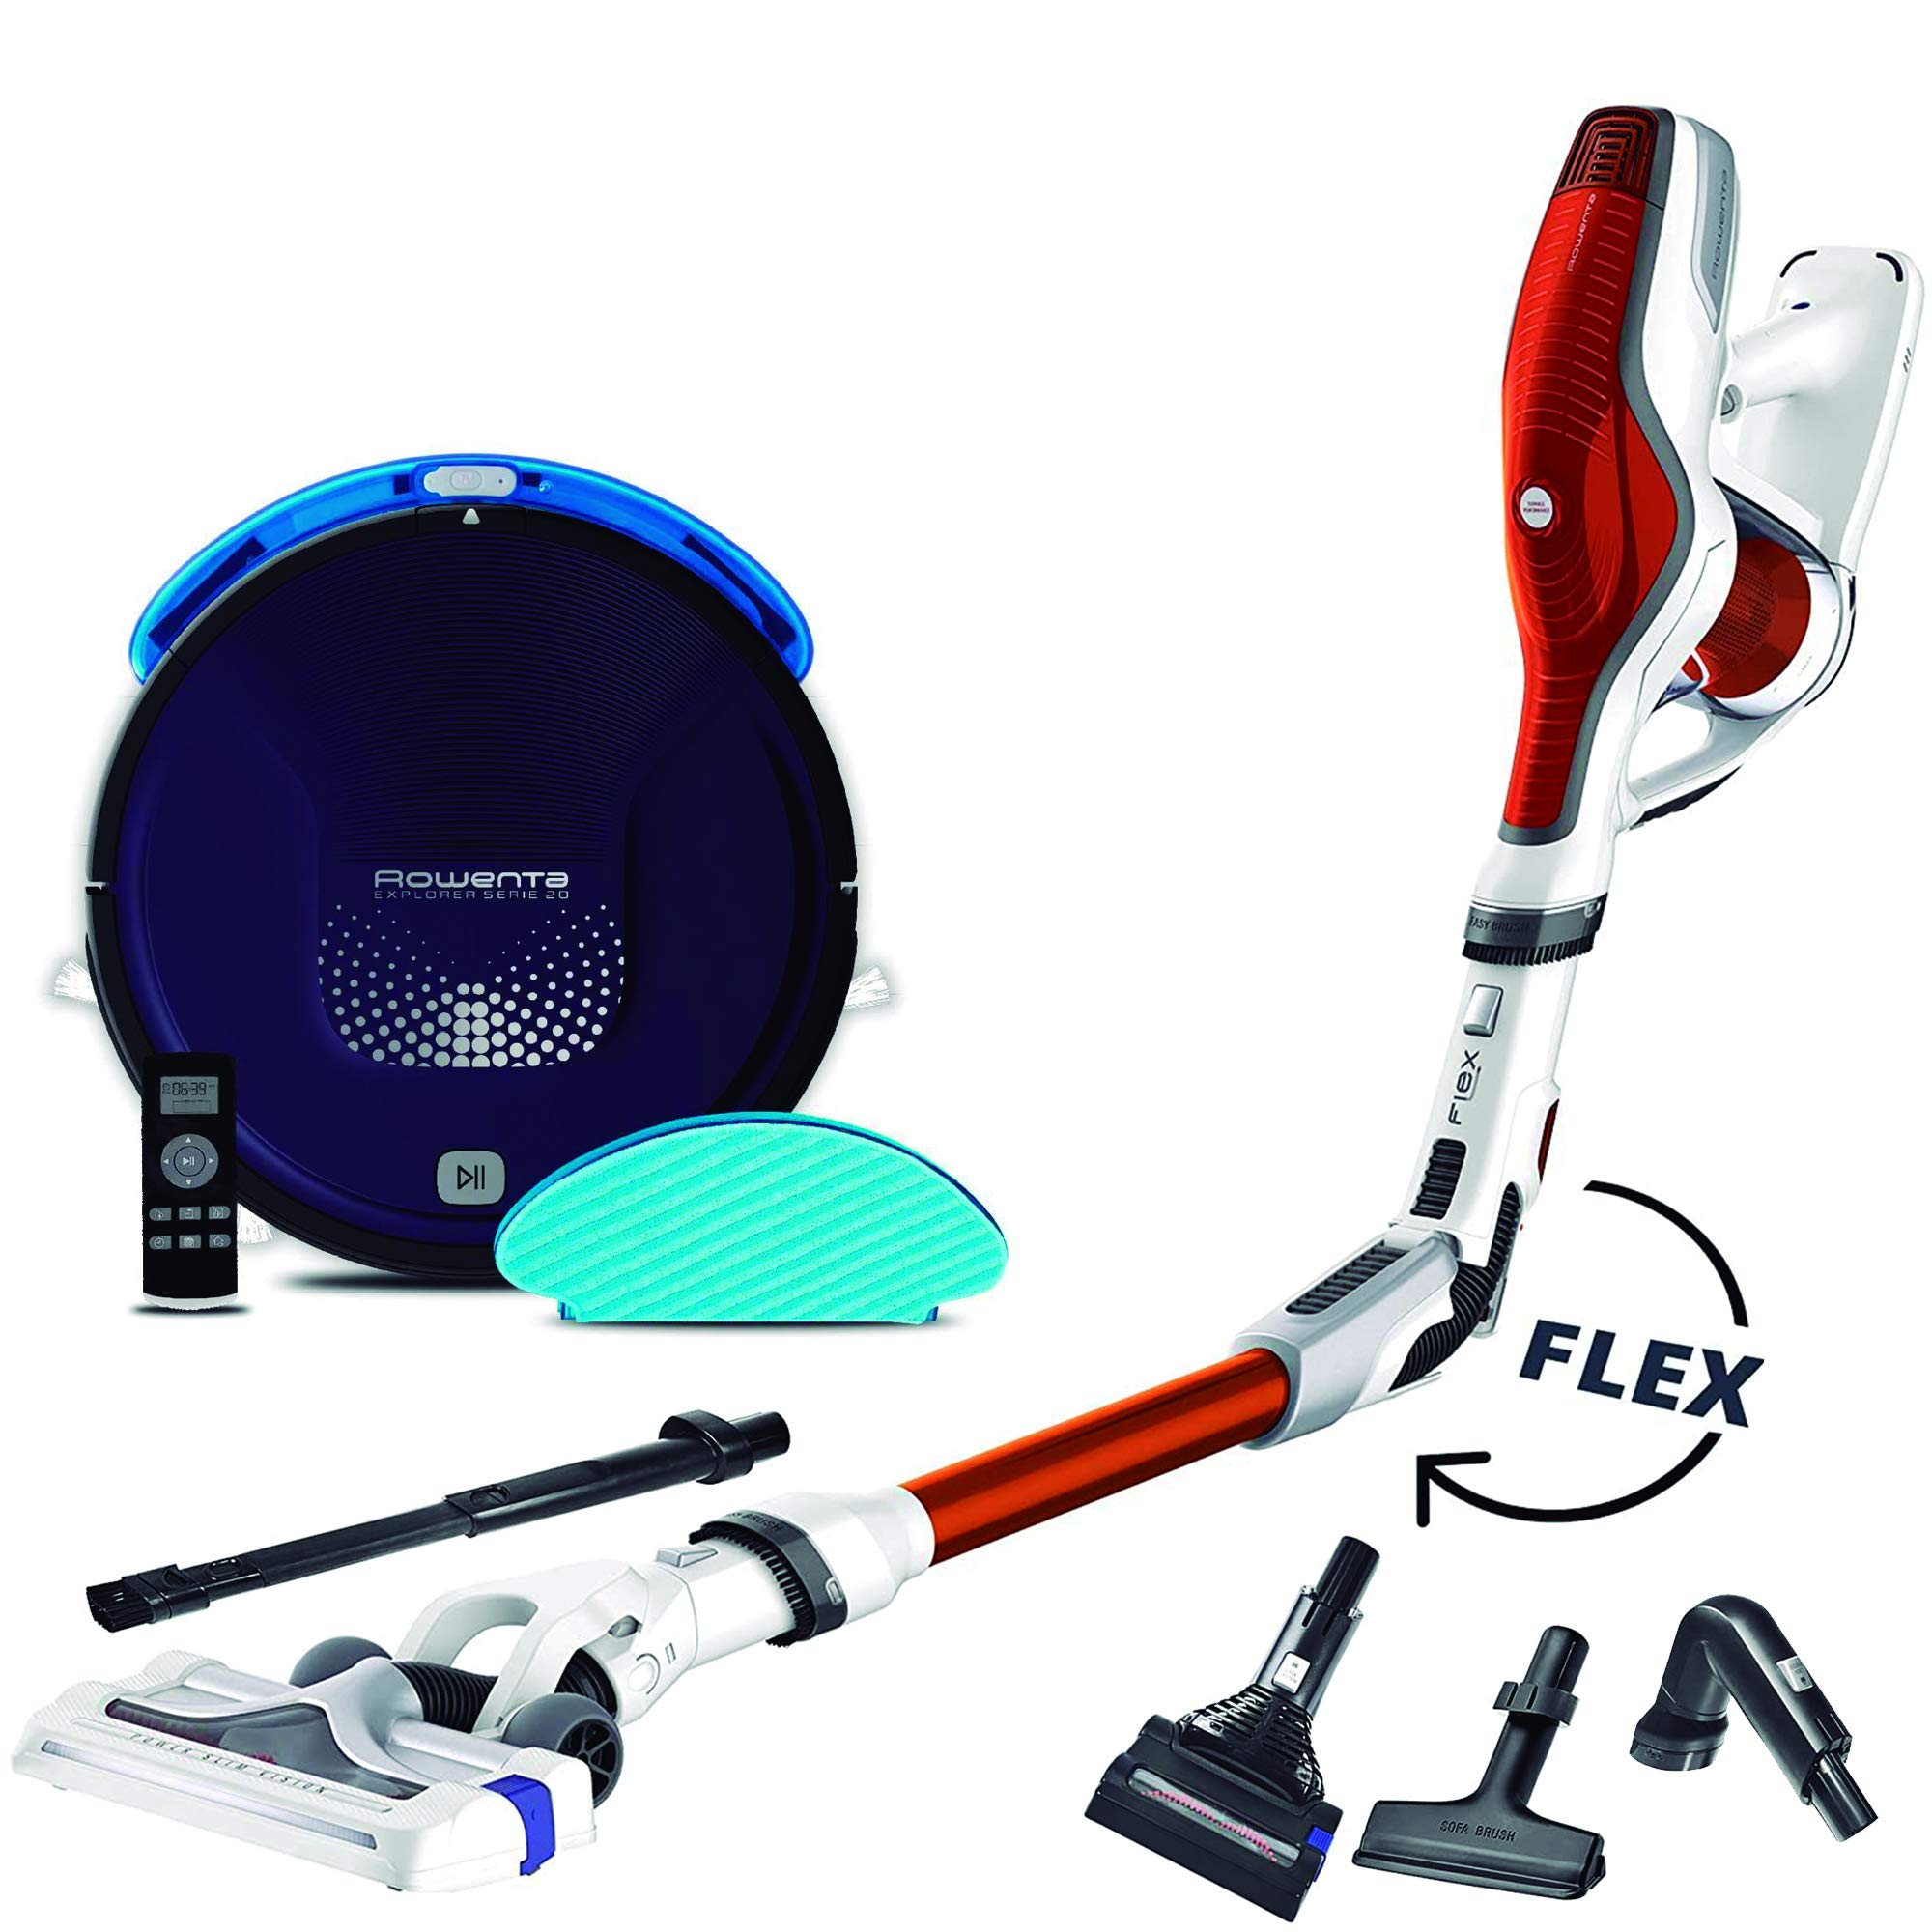 Rowenta Smart Force Explorer Aqua RR6871WH - Robot Aspirador 2 en 1, aspira y friega + Rowenta Air Force Flex 560 RH9474WO Aspiradora de Mano sin Cable, Tubo Flexible: Amazon.es: Hogar